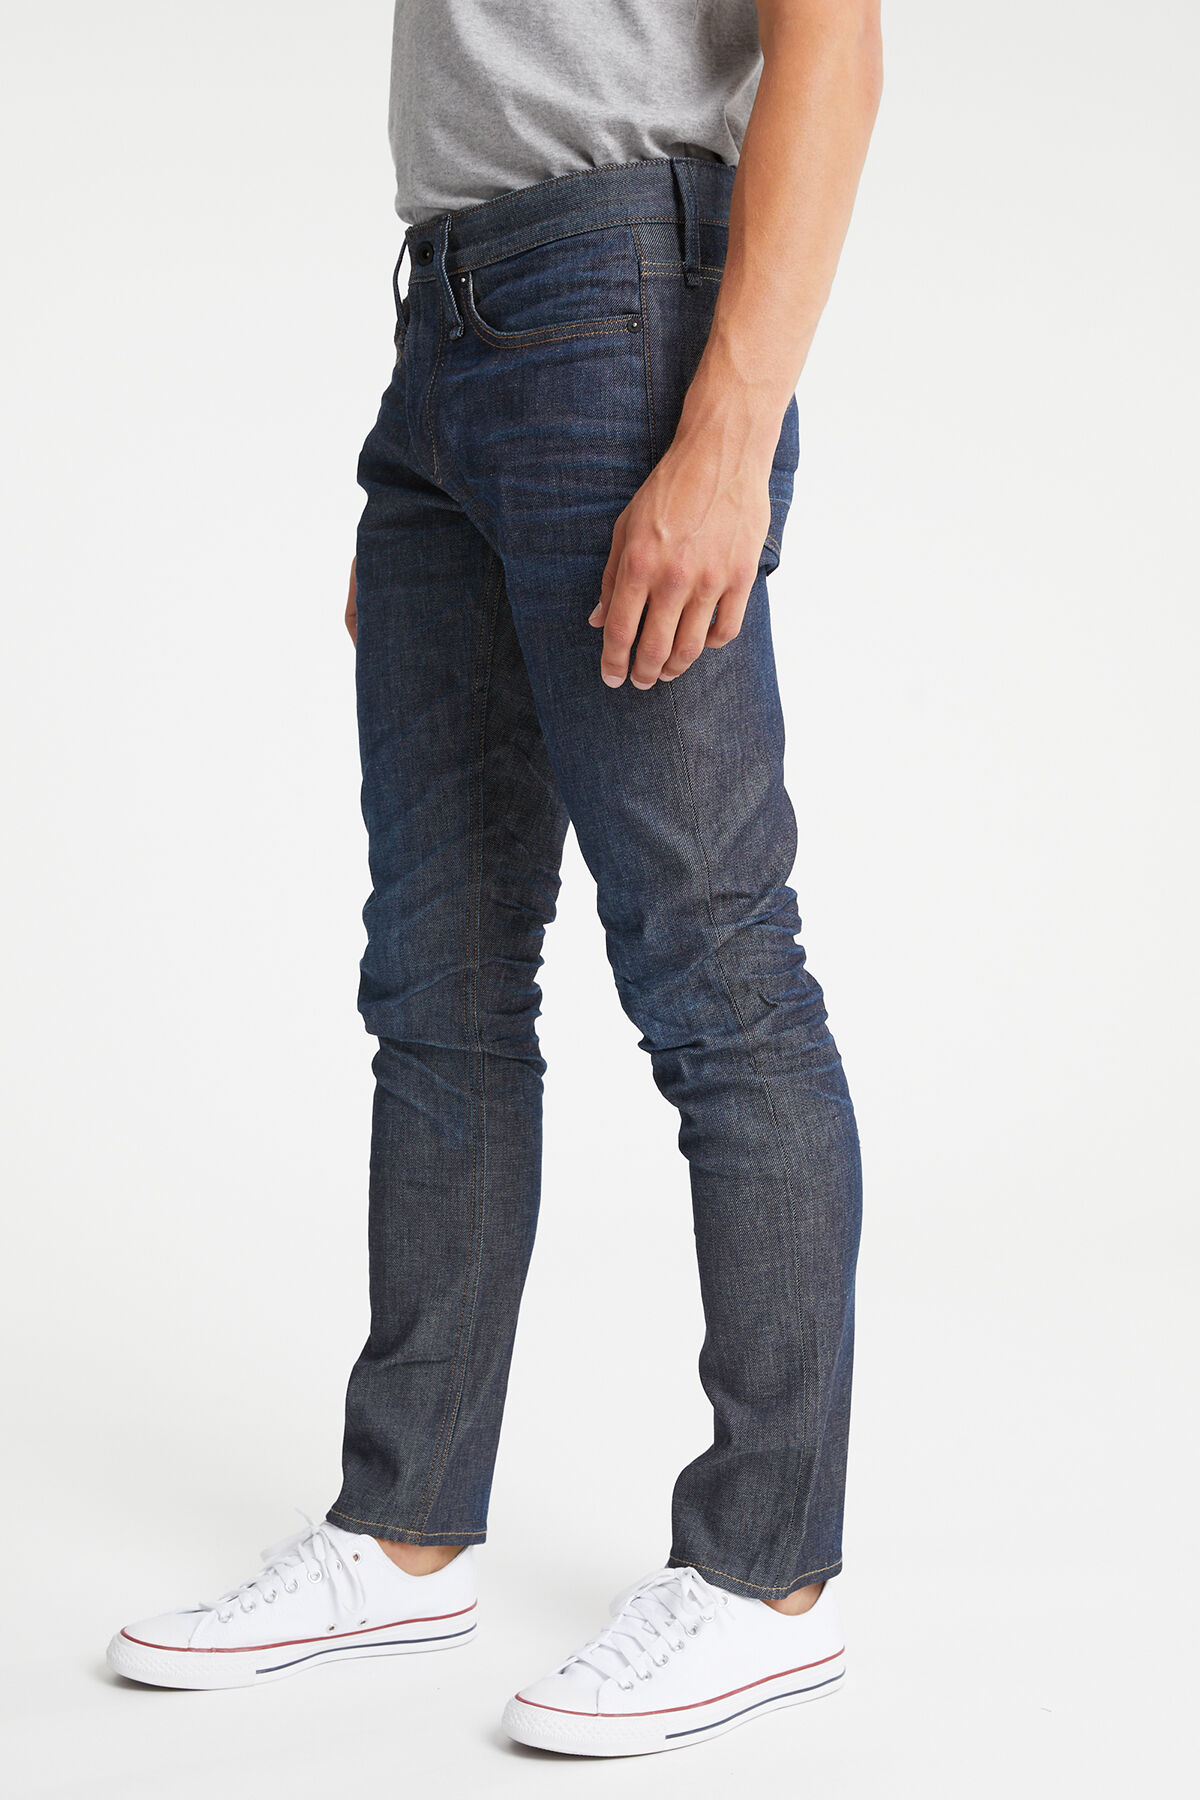 RAZOR One Year Indigo Denim - Slim Fit